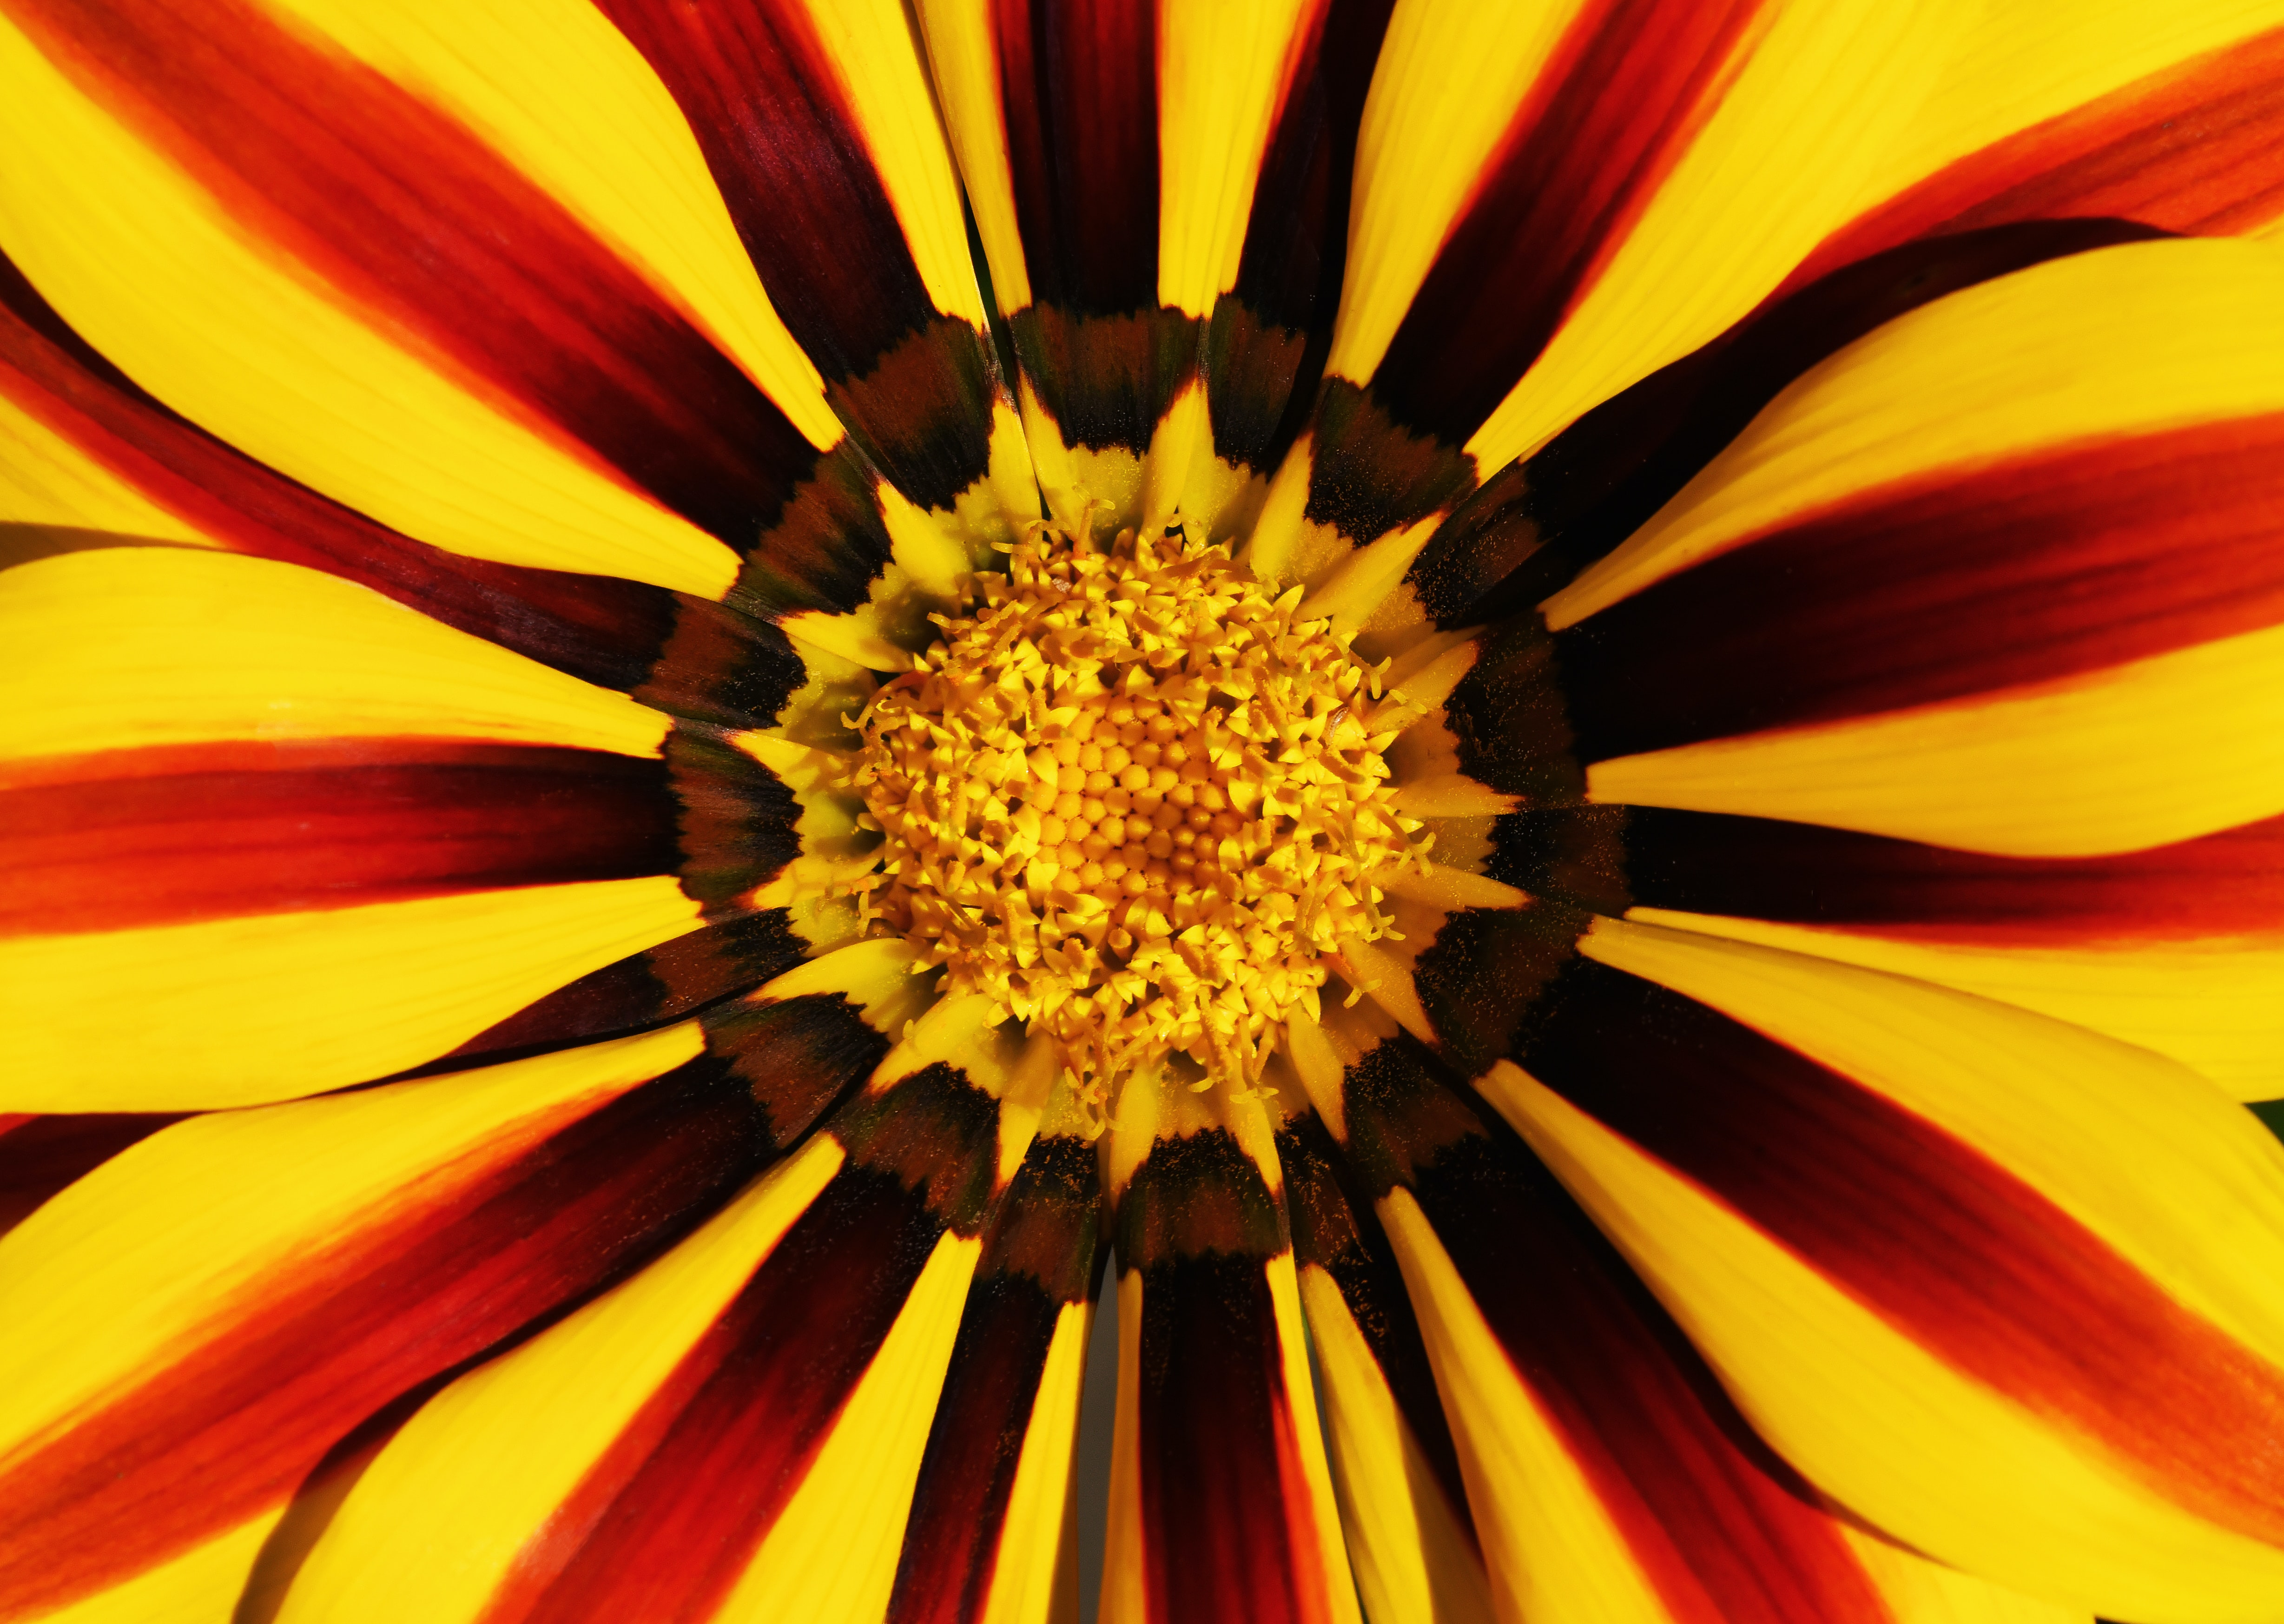 yellow and red petaled flower macro photography